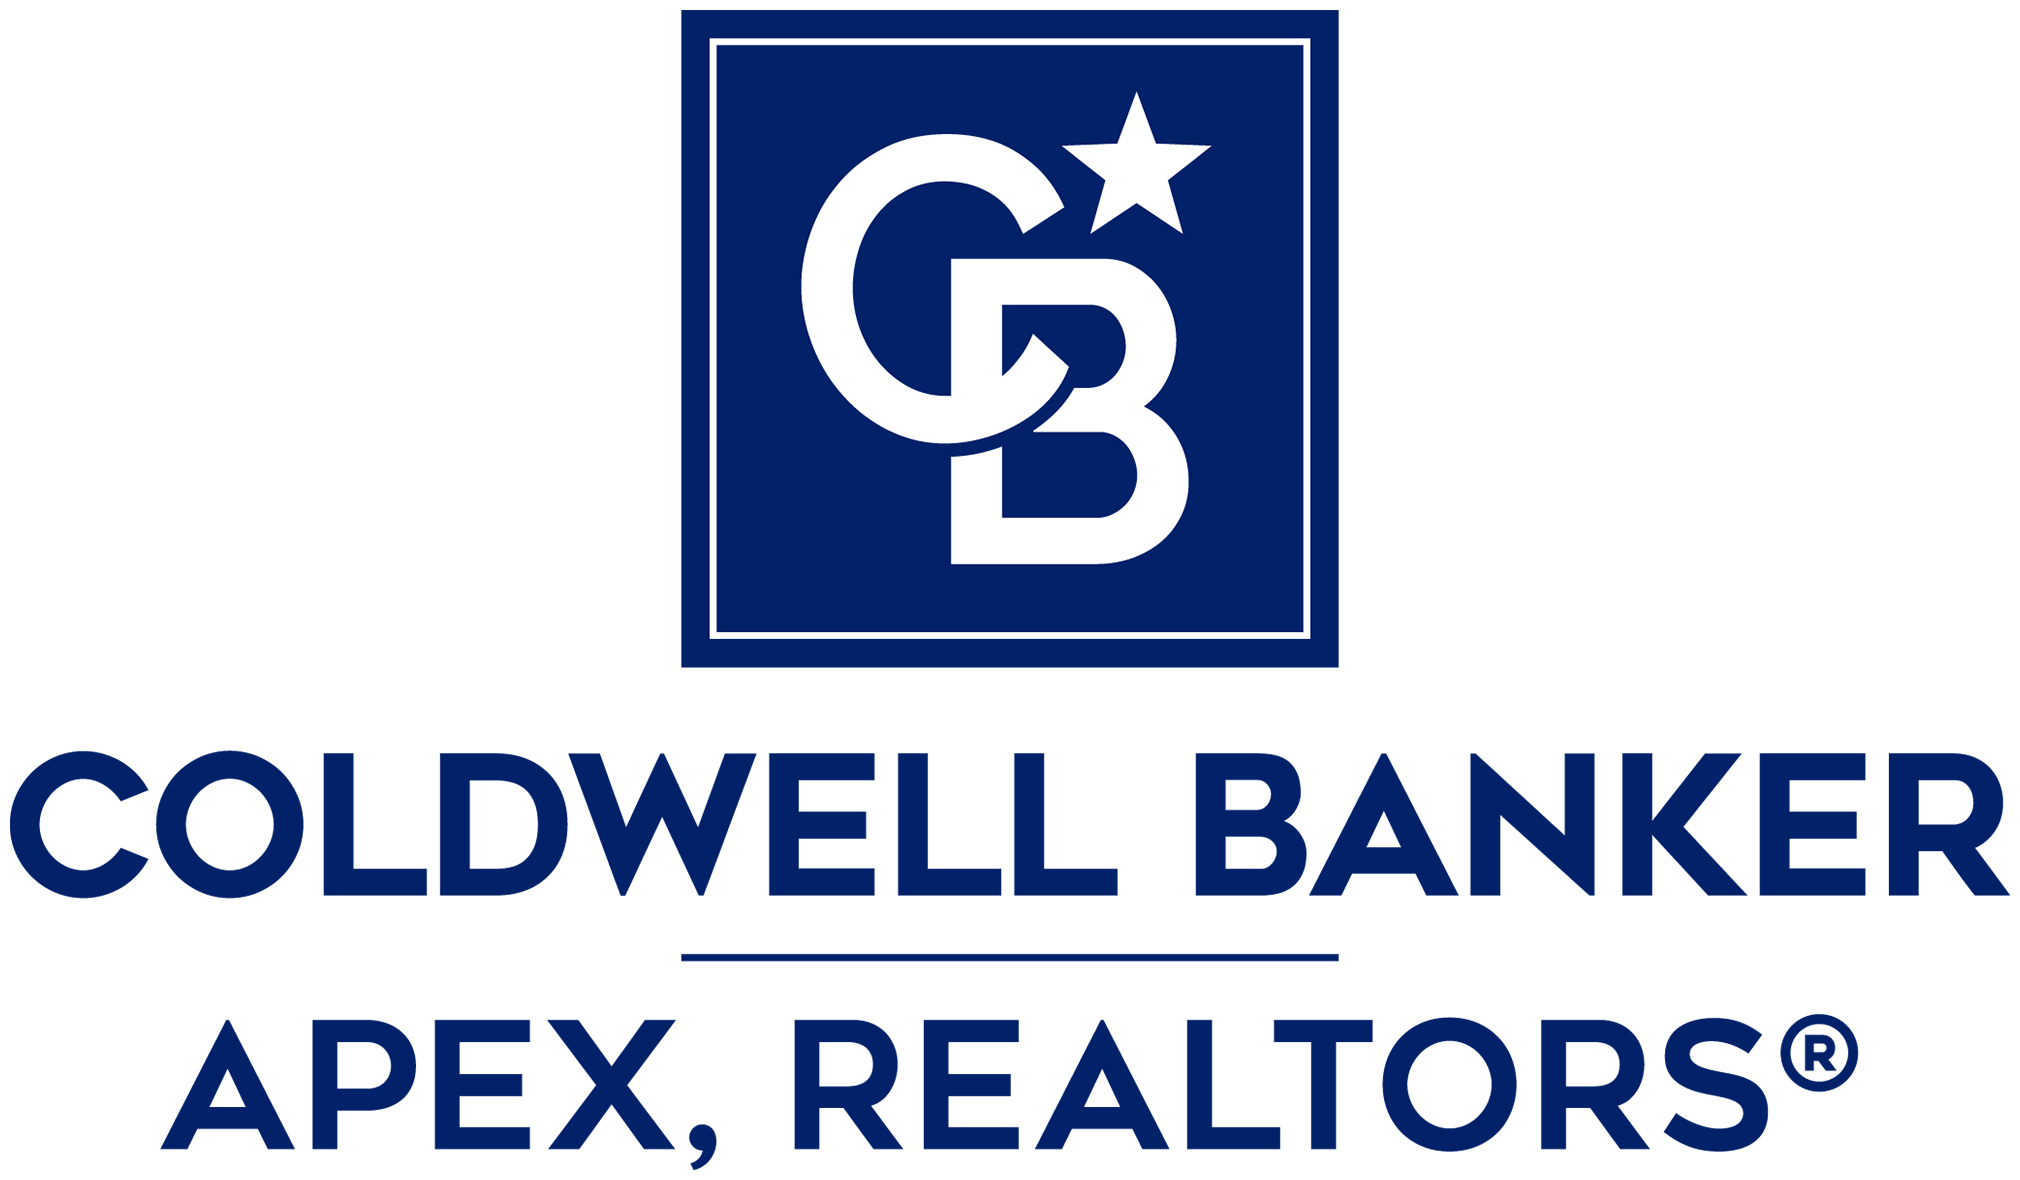 Susan Livingston - Coldwell Banker Apex Realtors